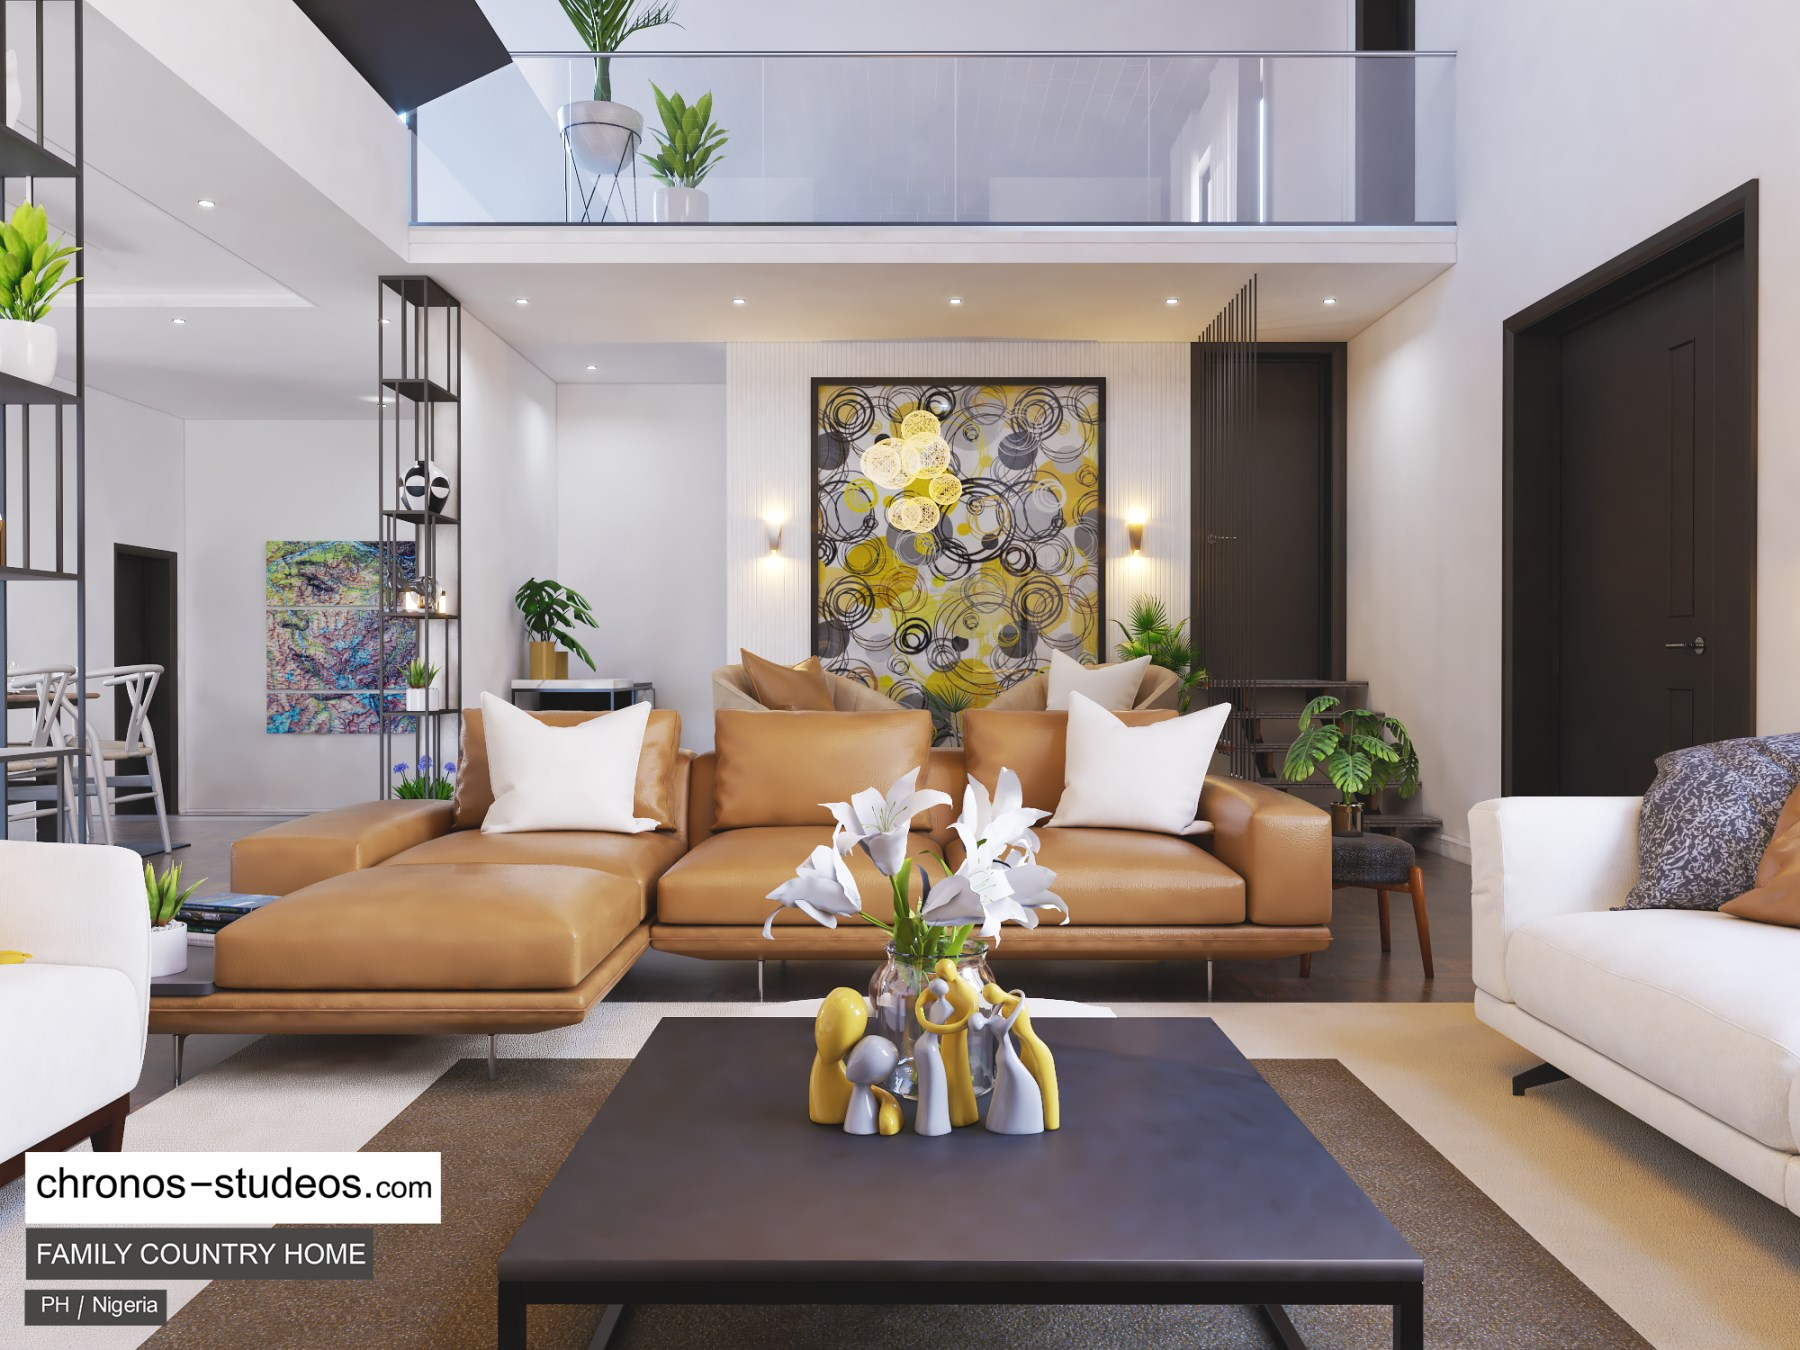 Living room design by chronos studeos architects 2